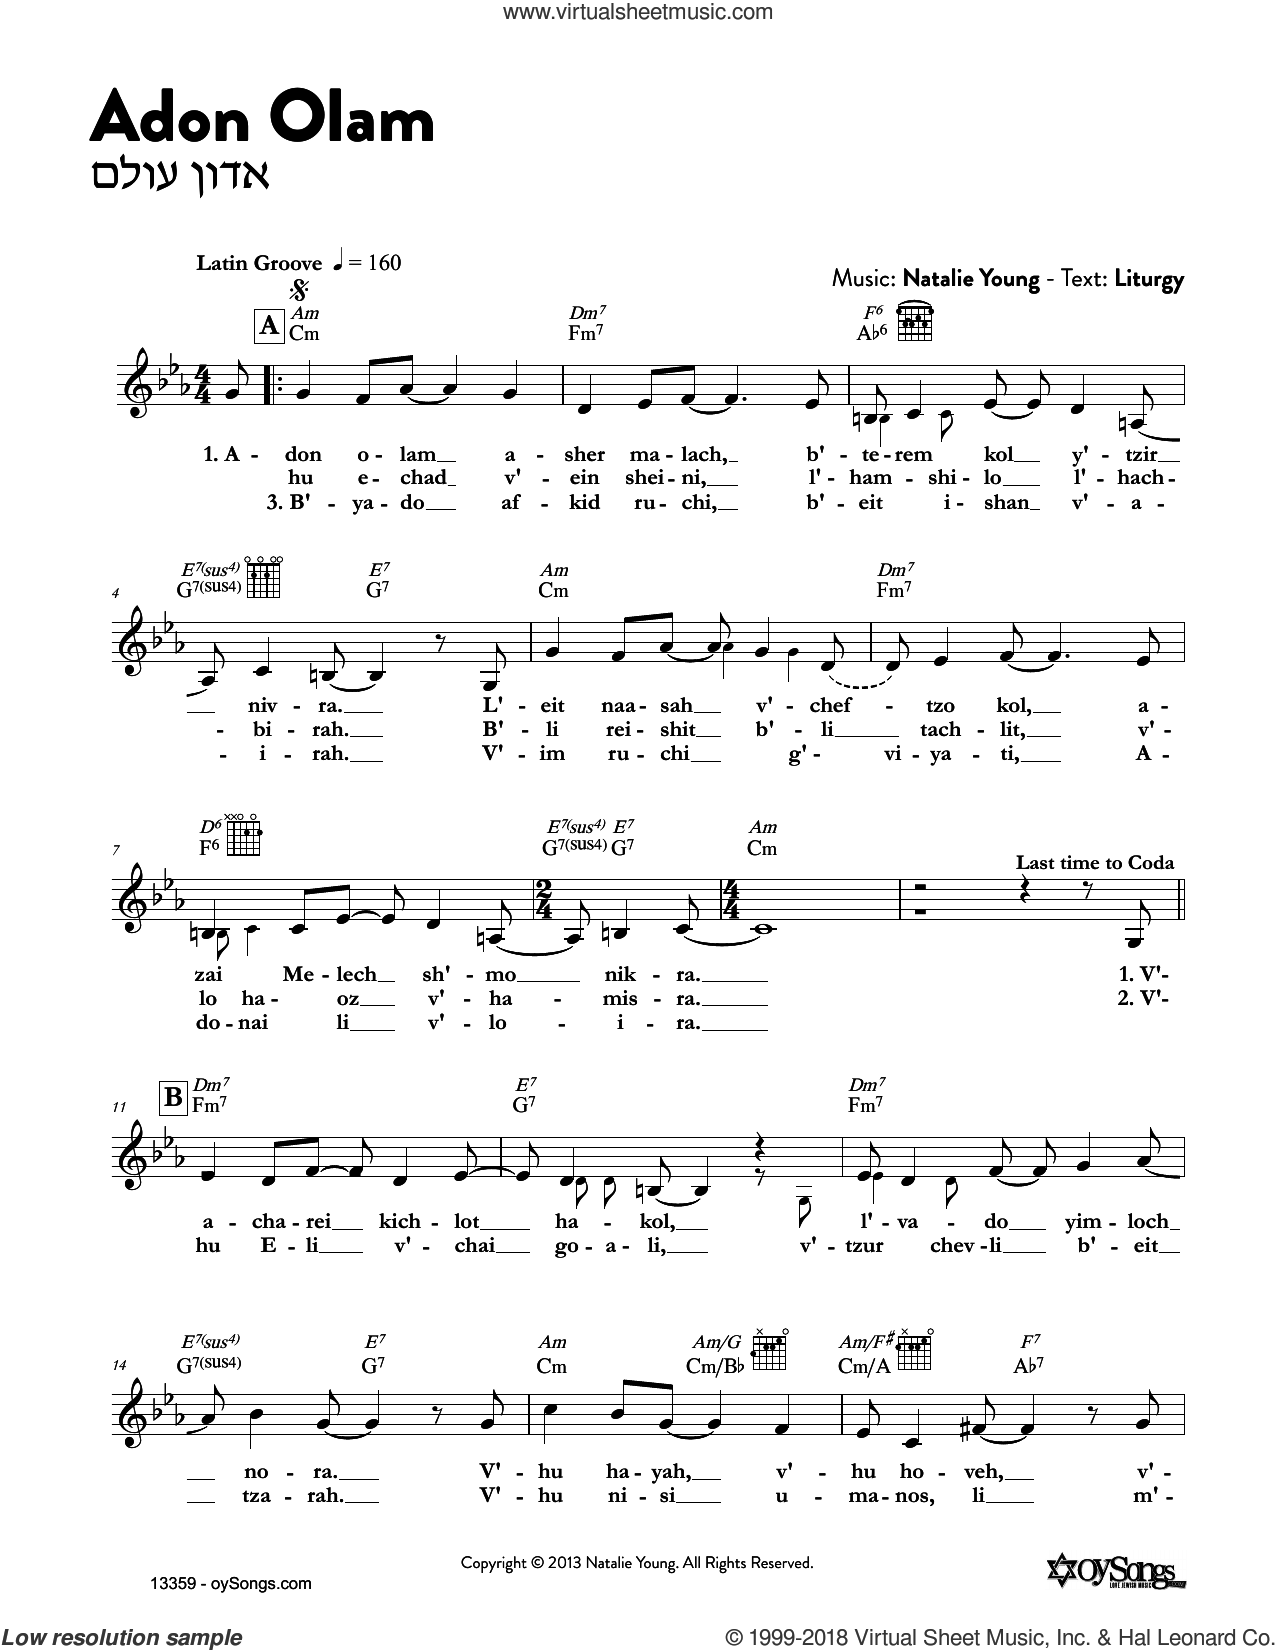 Adon Olam sheet music for voice and other instruments (fake book) by Natalie Young, intermediate skill level